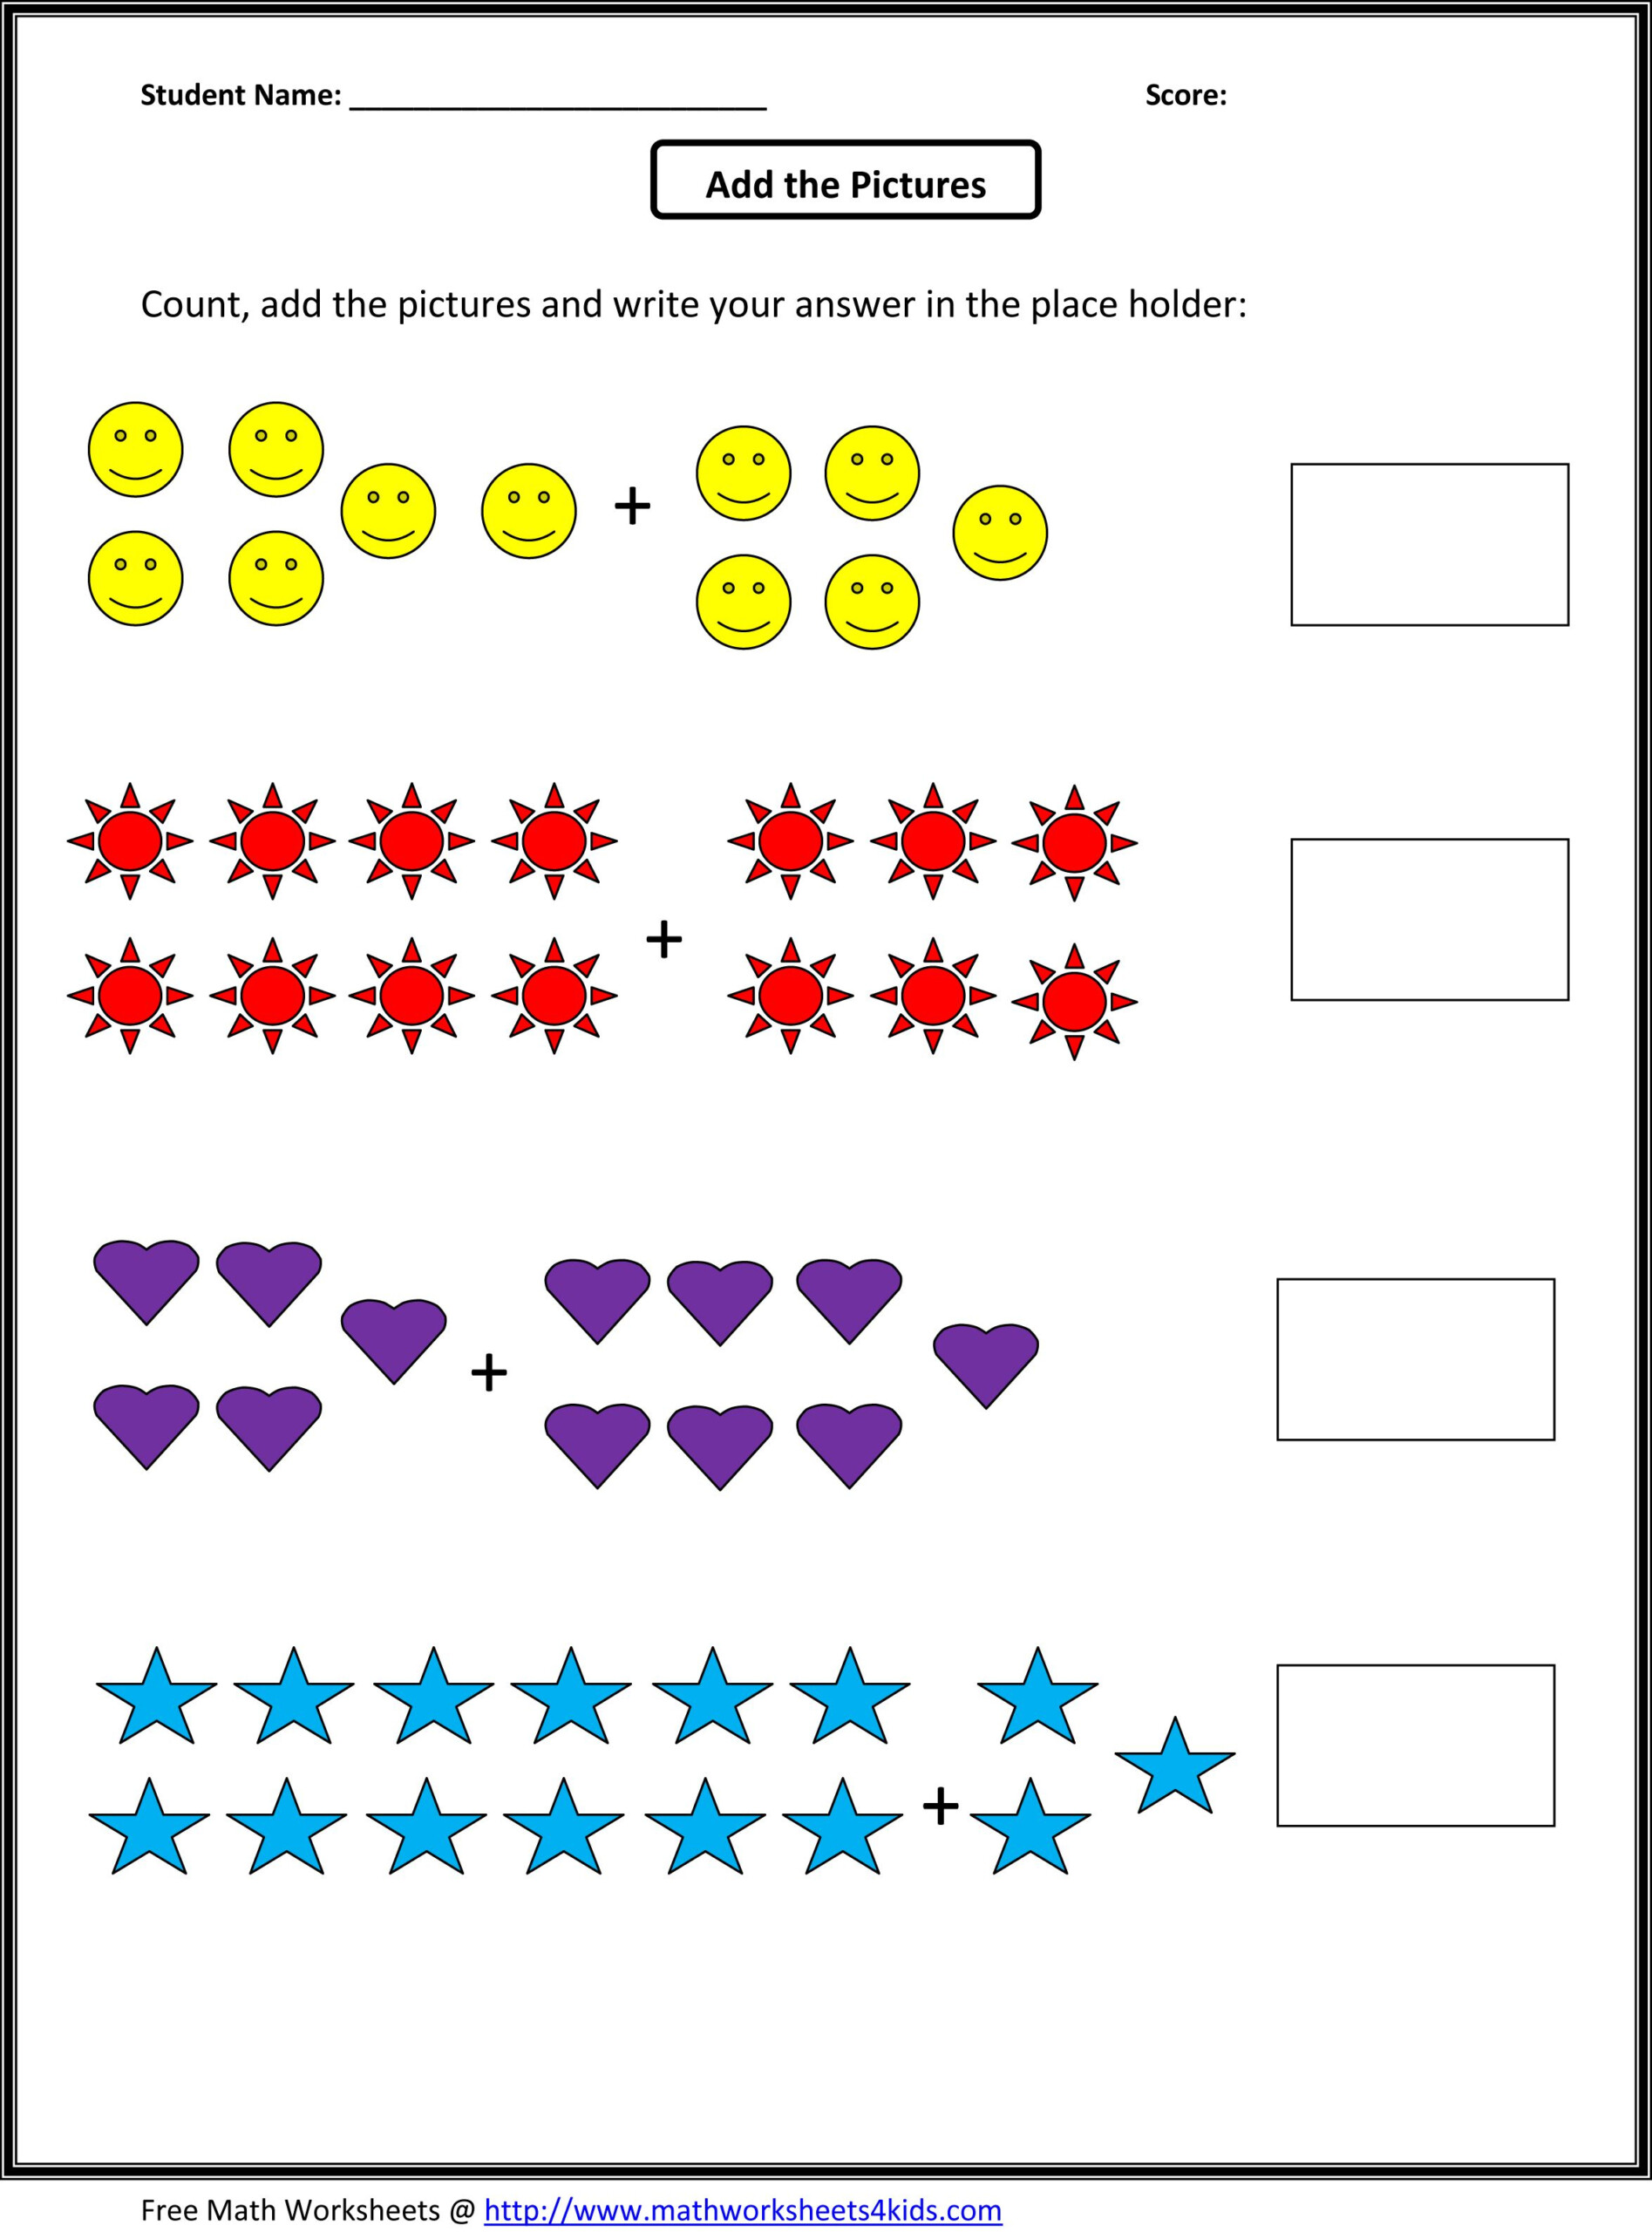 Grade 1 Addition Math Worksheets | First Grade Math with regard to Multiplication Worksheets Level 1